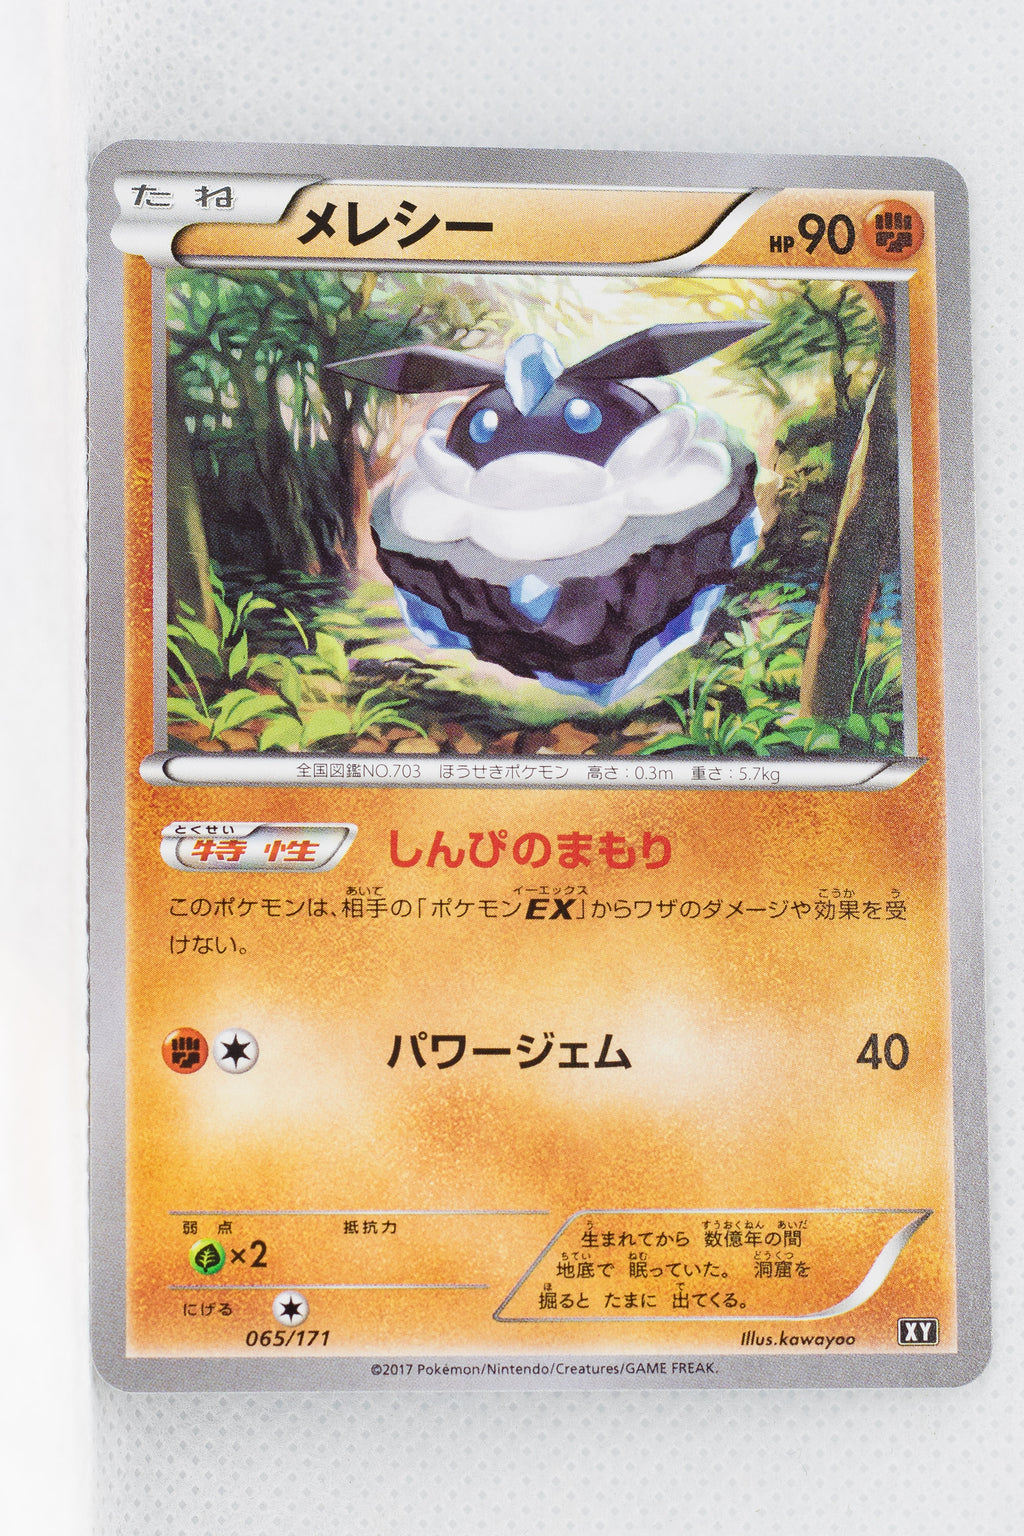 The Best of XY 065/171 Carbink